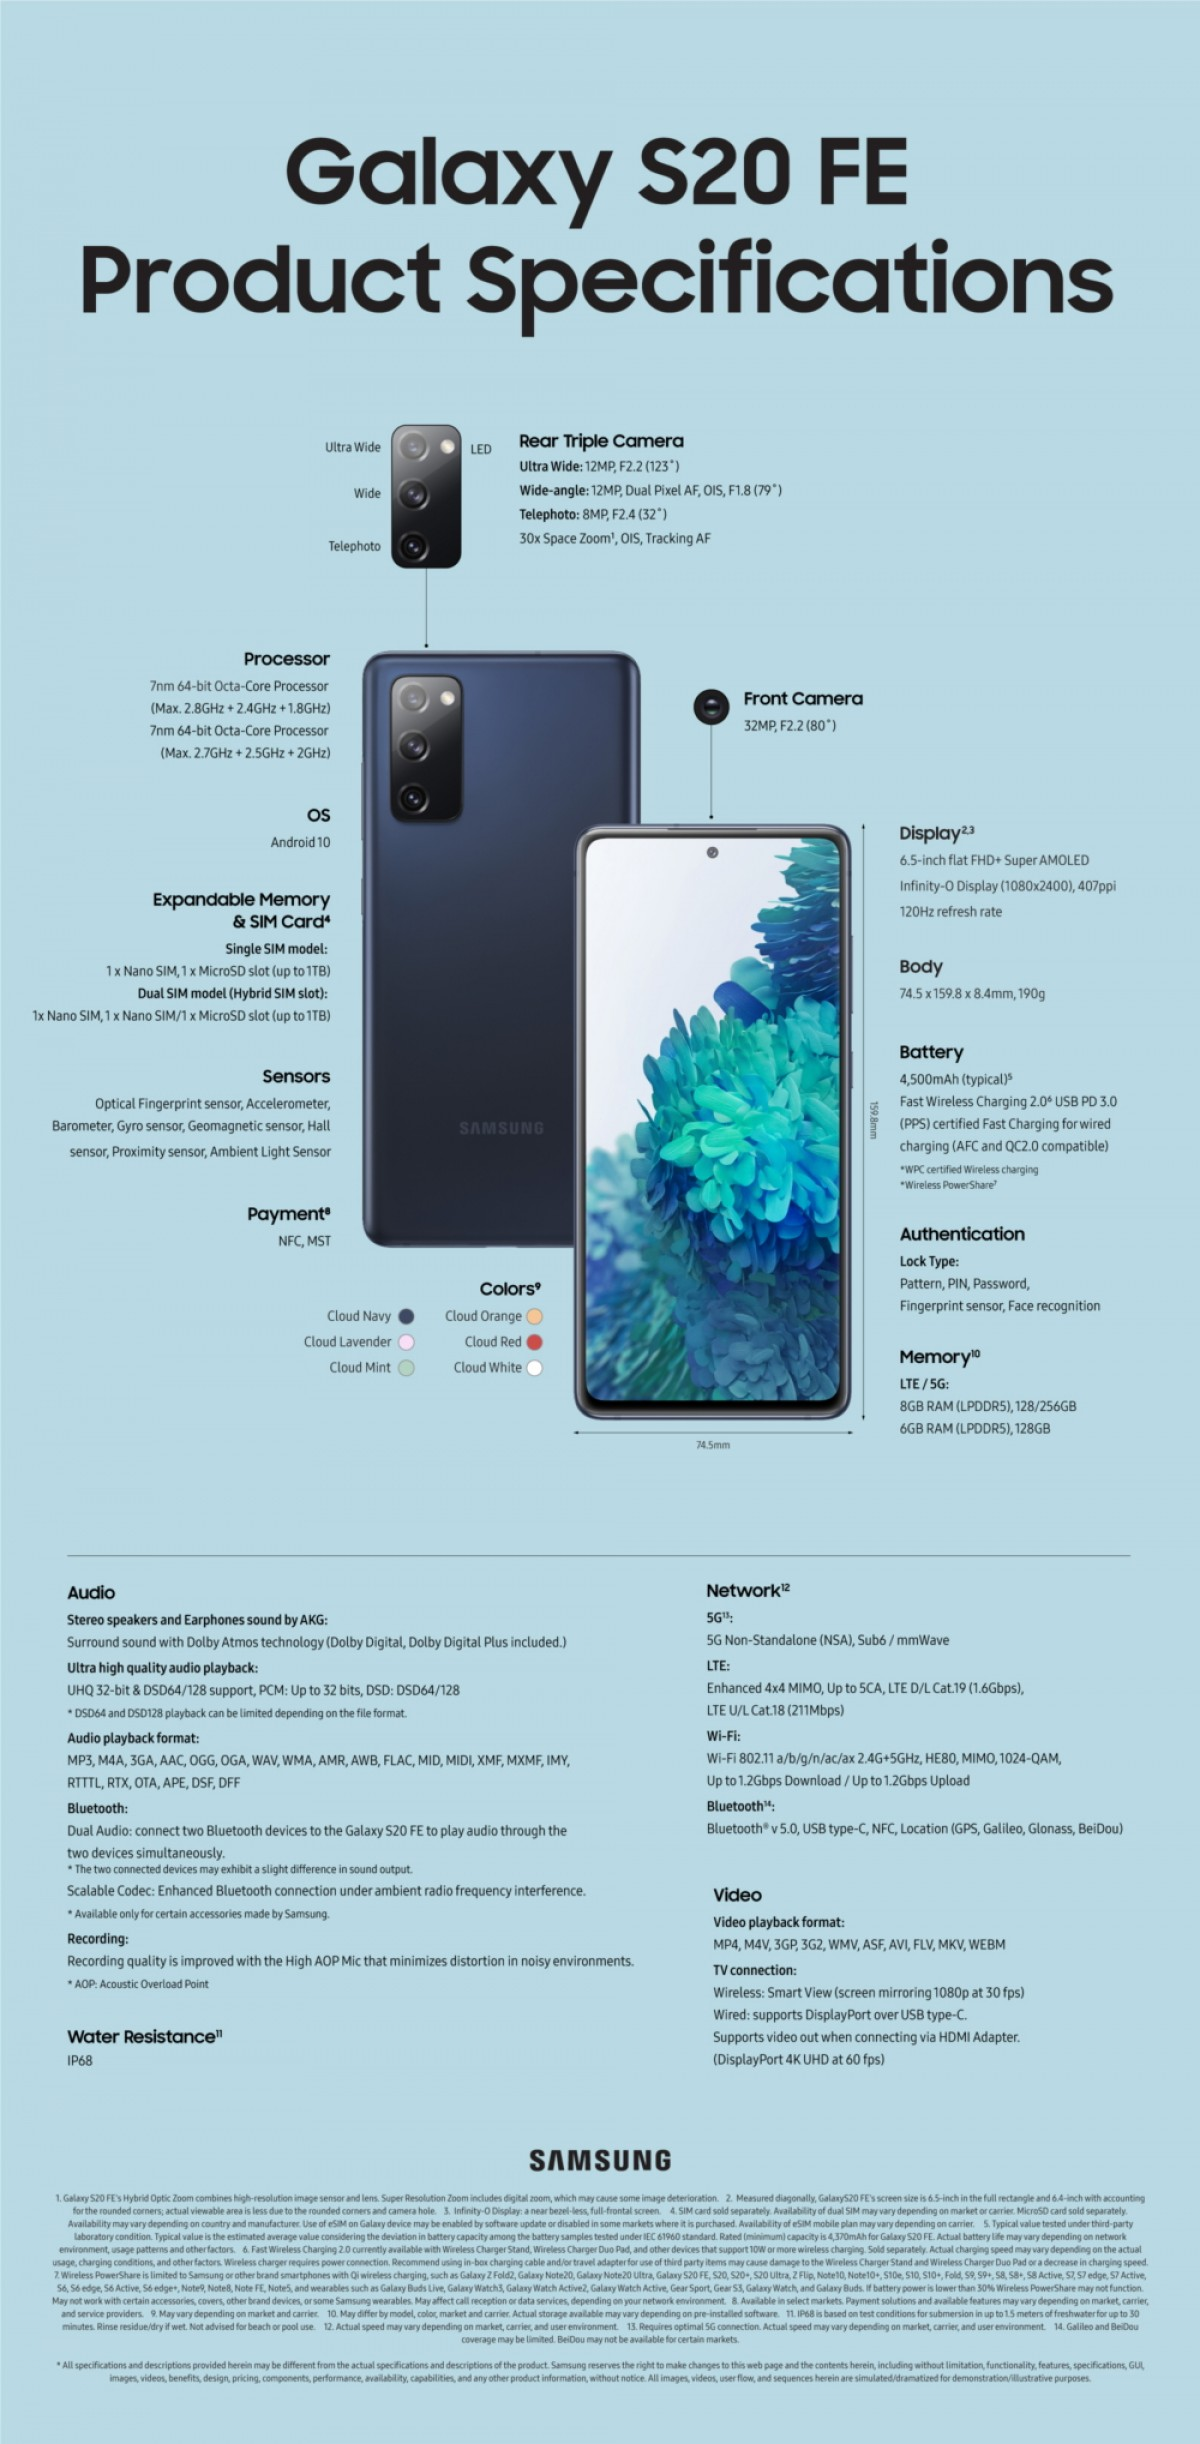 Samsung Galaxy S20 FE design story reveals how fans helped create the phone